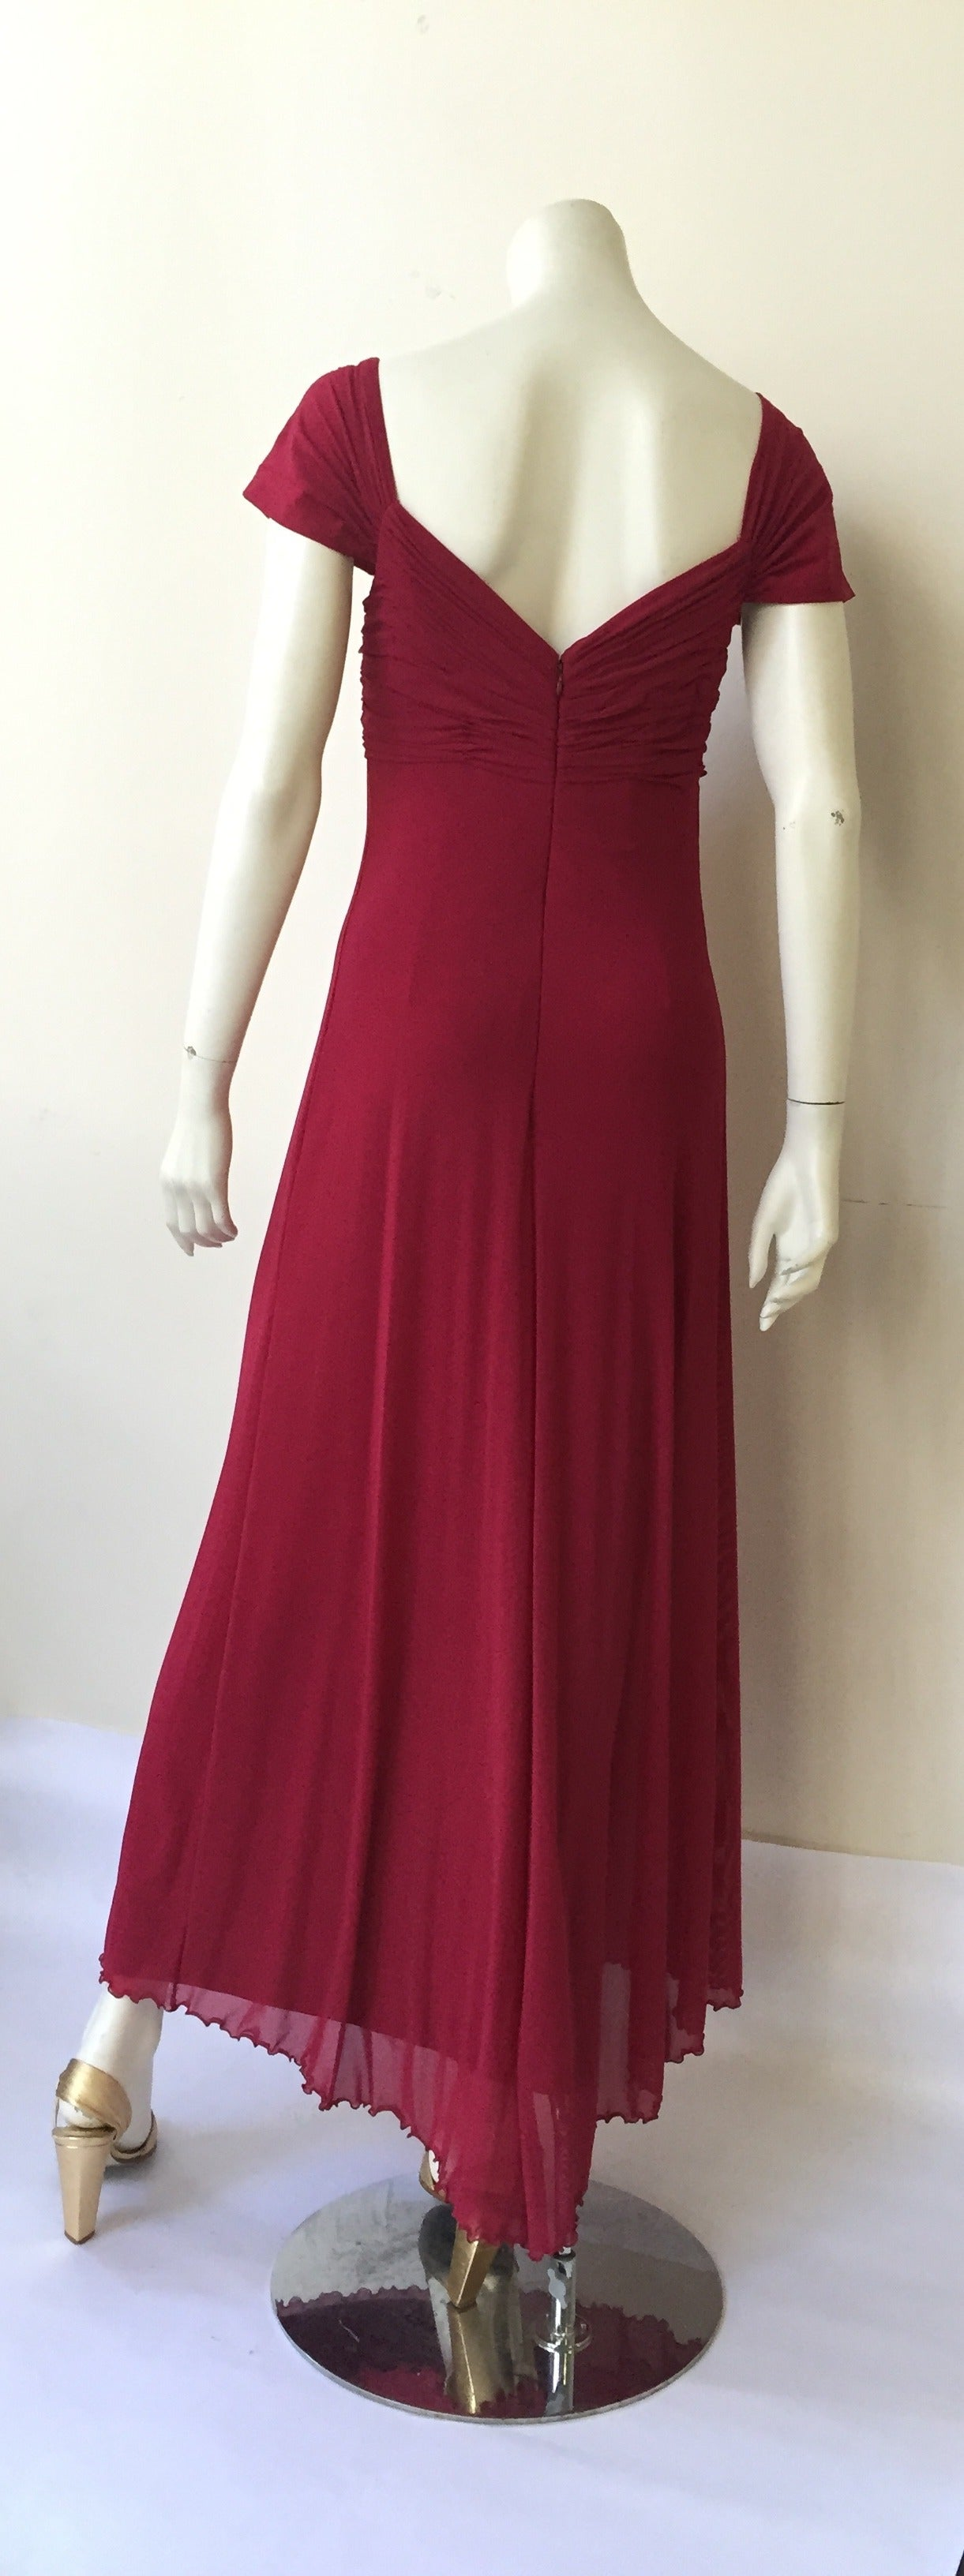 Vicky Tiel Couture Paris Silk Burgundy Evening Gown Size 6/8. For Sale 1